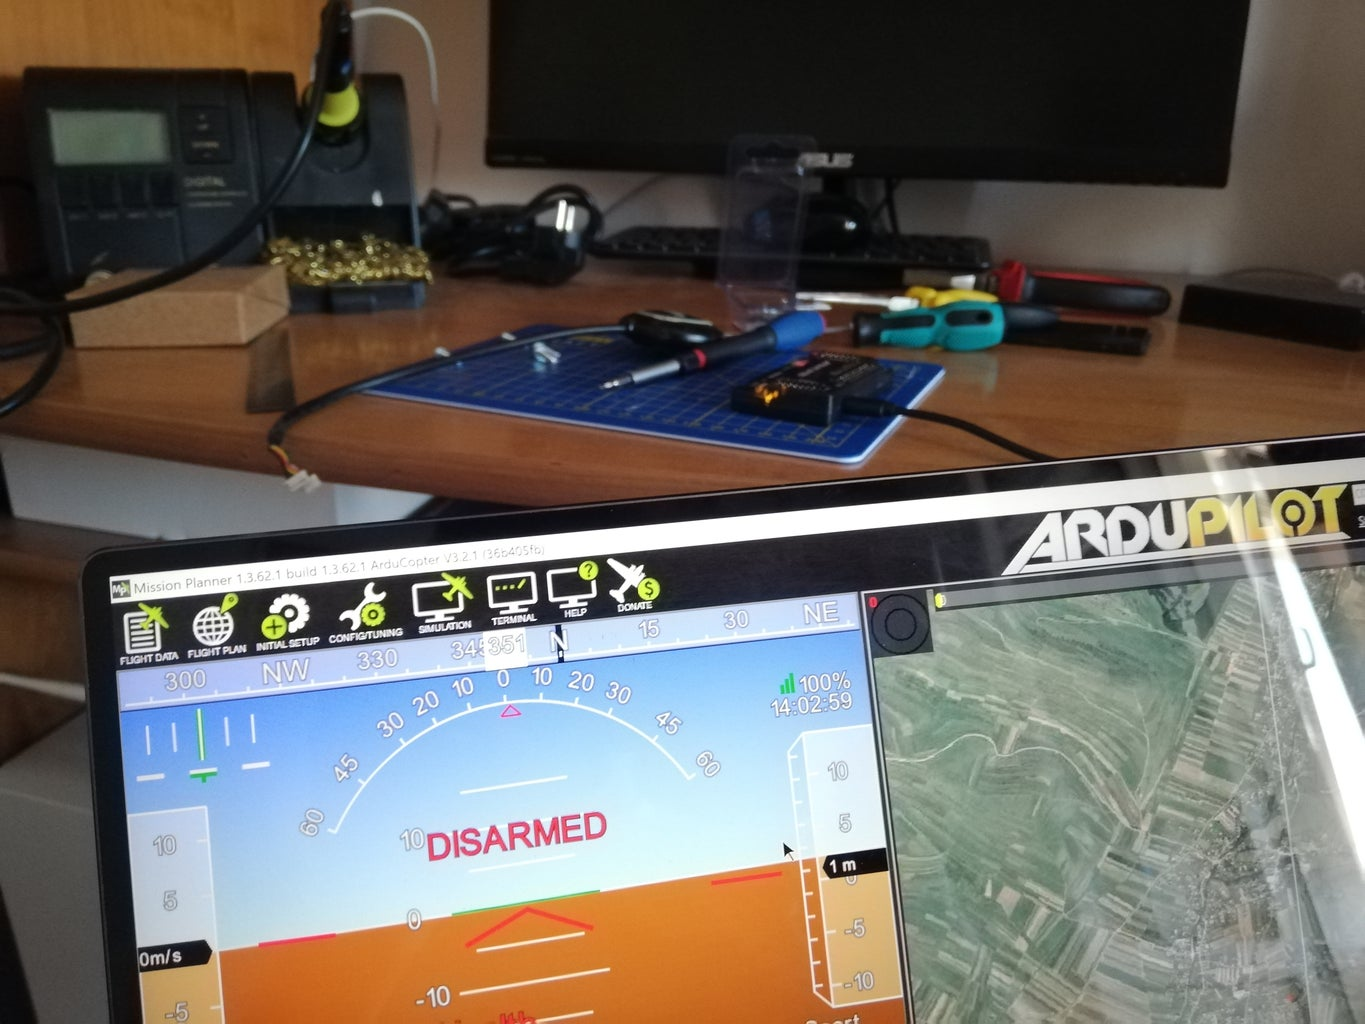 Setting Up ArduCopter